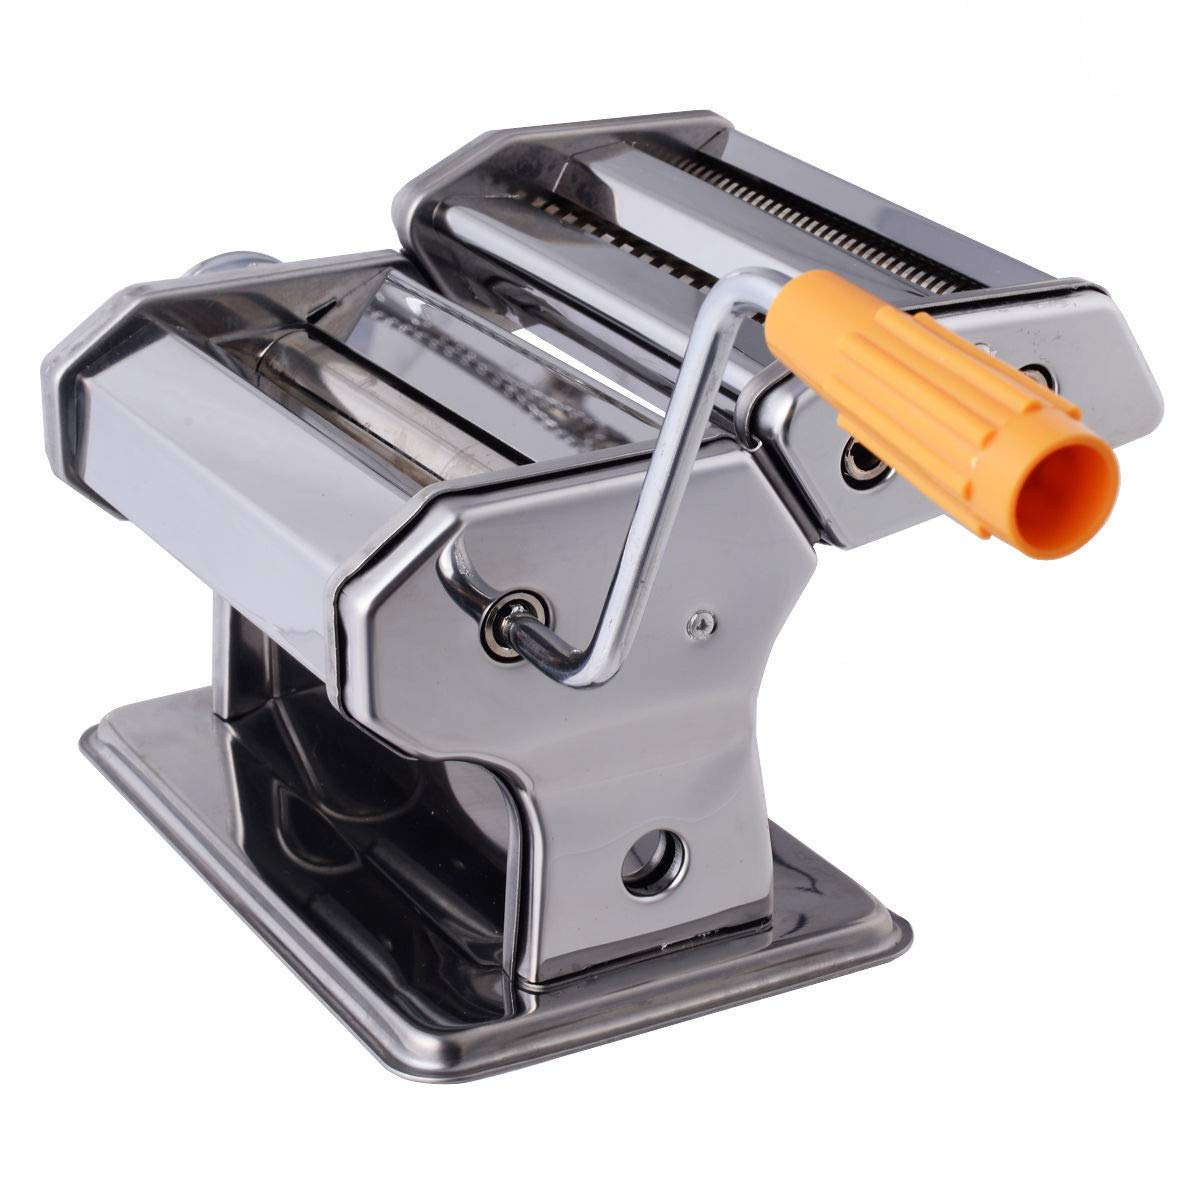 Cypressshop Stainless Steel Pasta Makers Fresh Noodle Roller Machine Kitchen Cooking Utensils For Spaghetti and Fettuccine